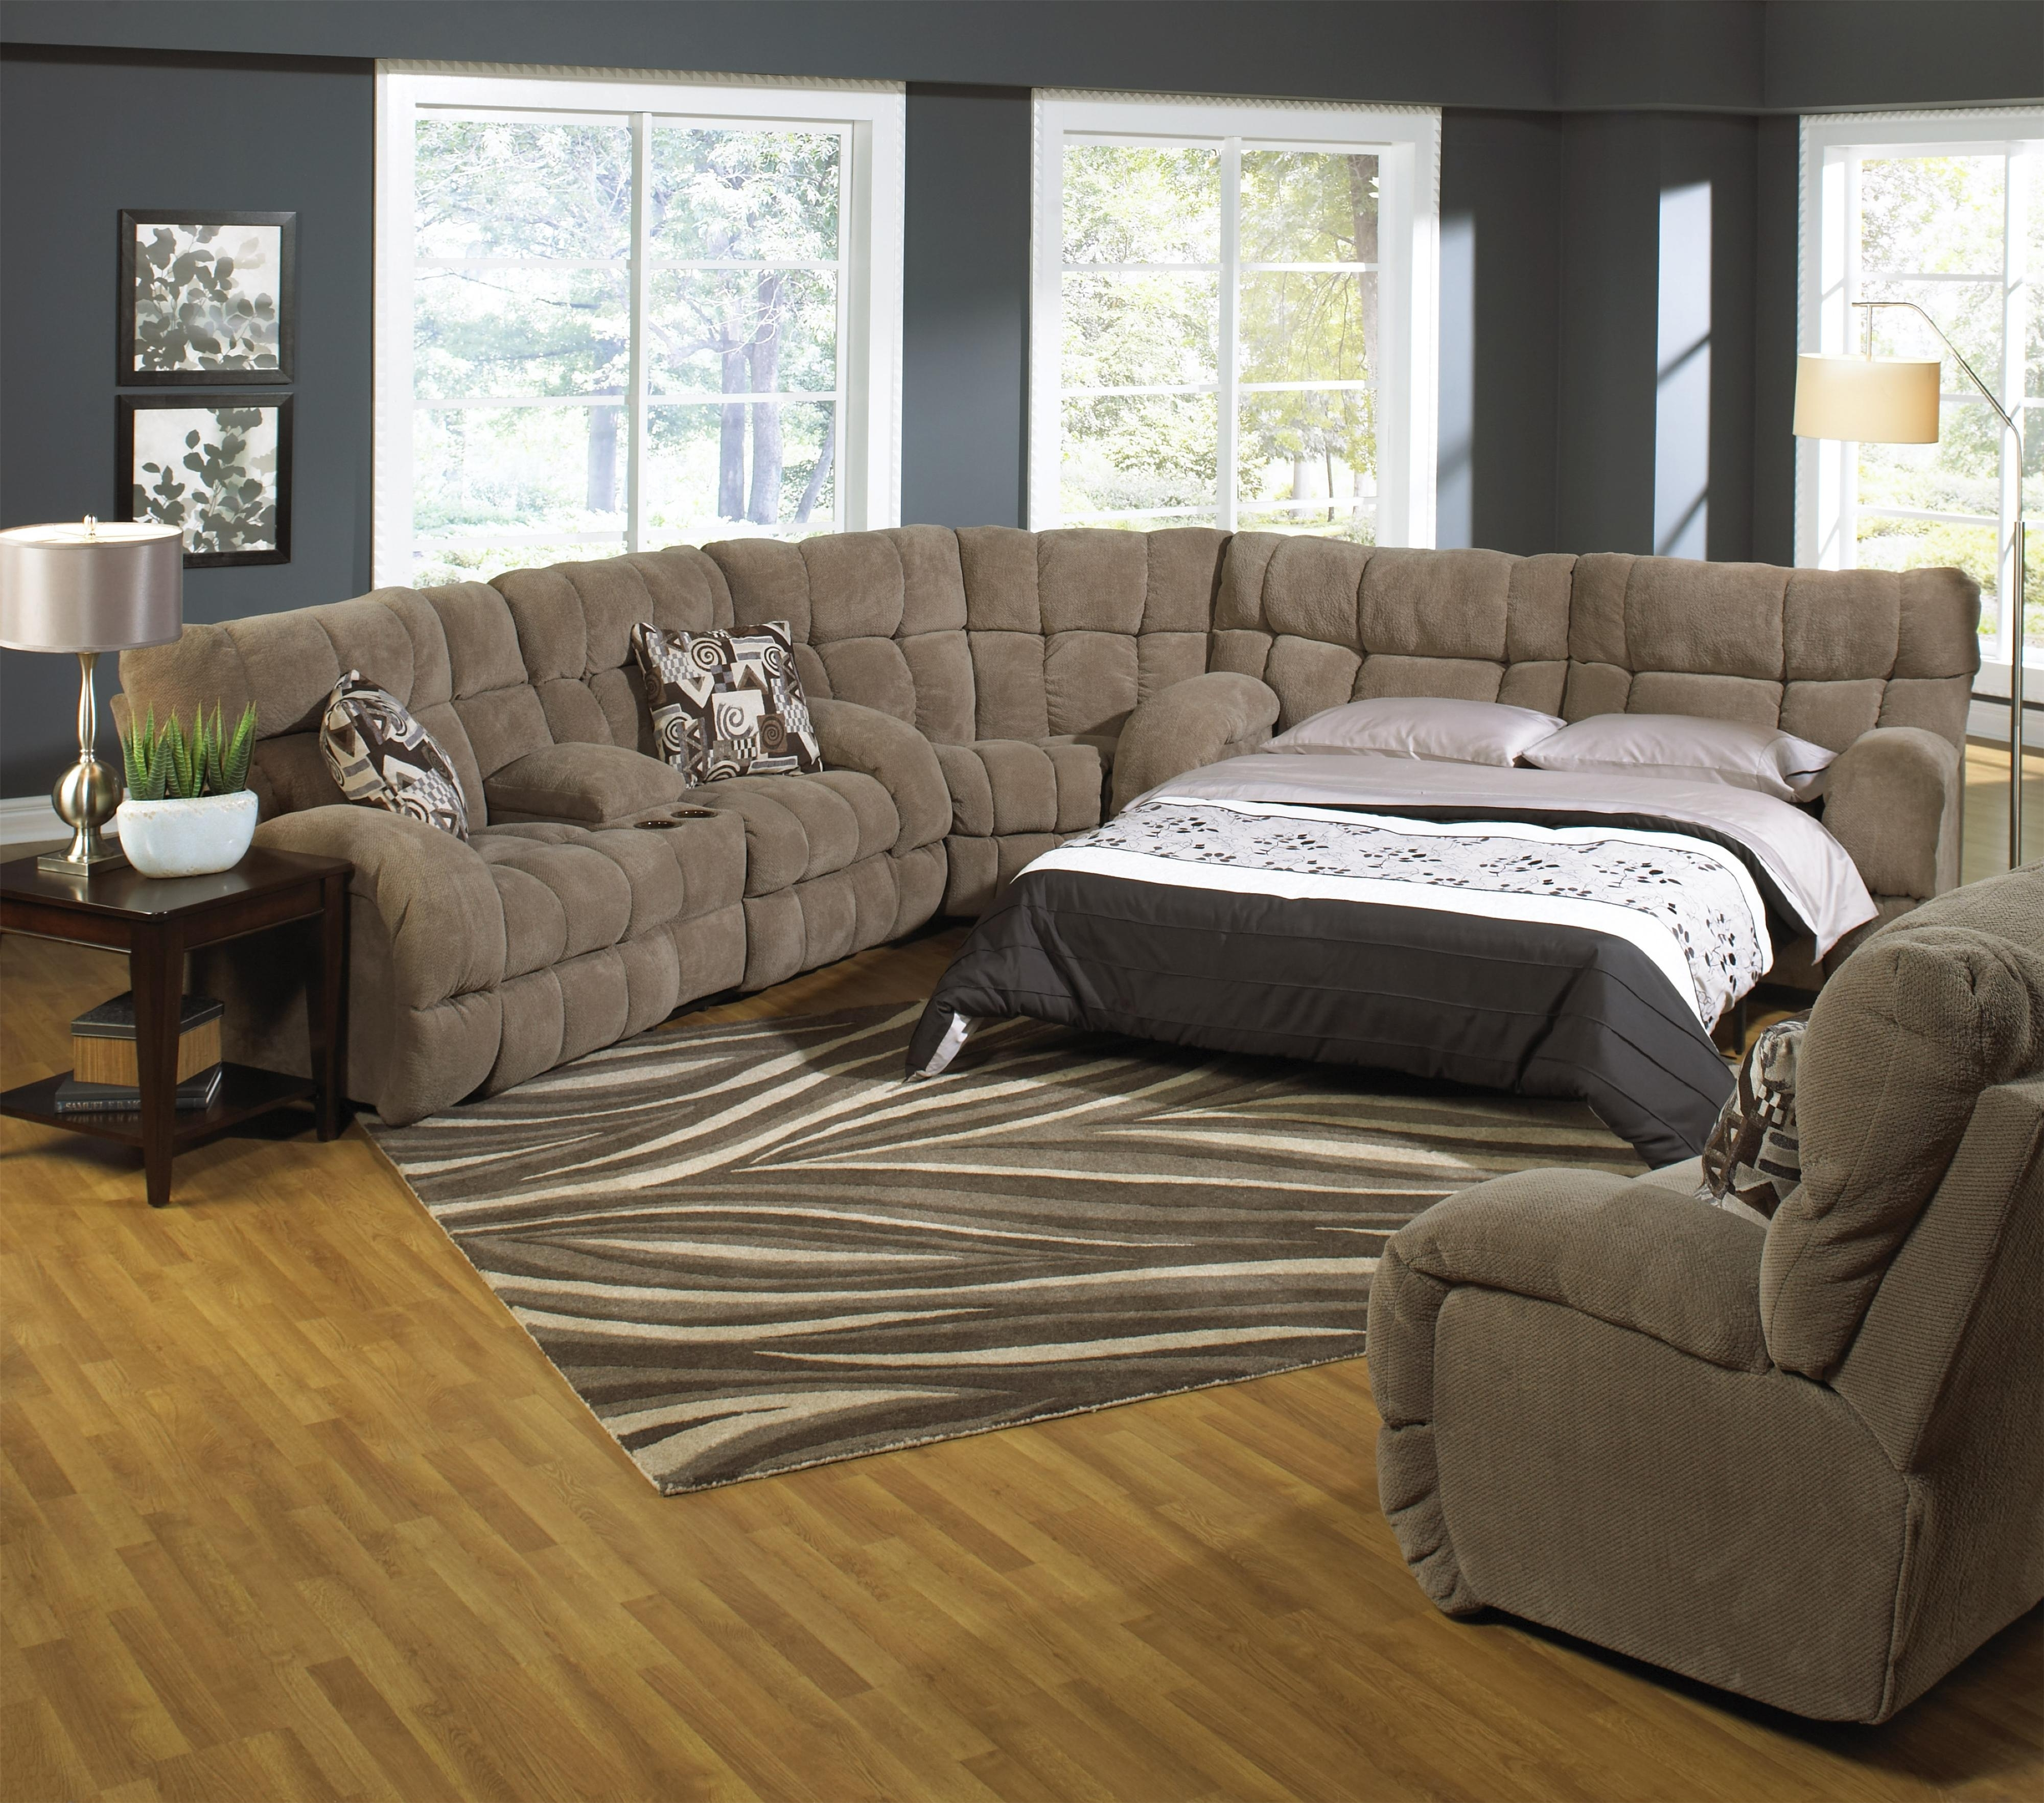 Reclining Sectional Sofa With Sofa Sleepercatnapper | Wolf And Throughout Sectional Sofas With Recliners (View 6 of 10)